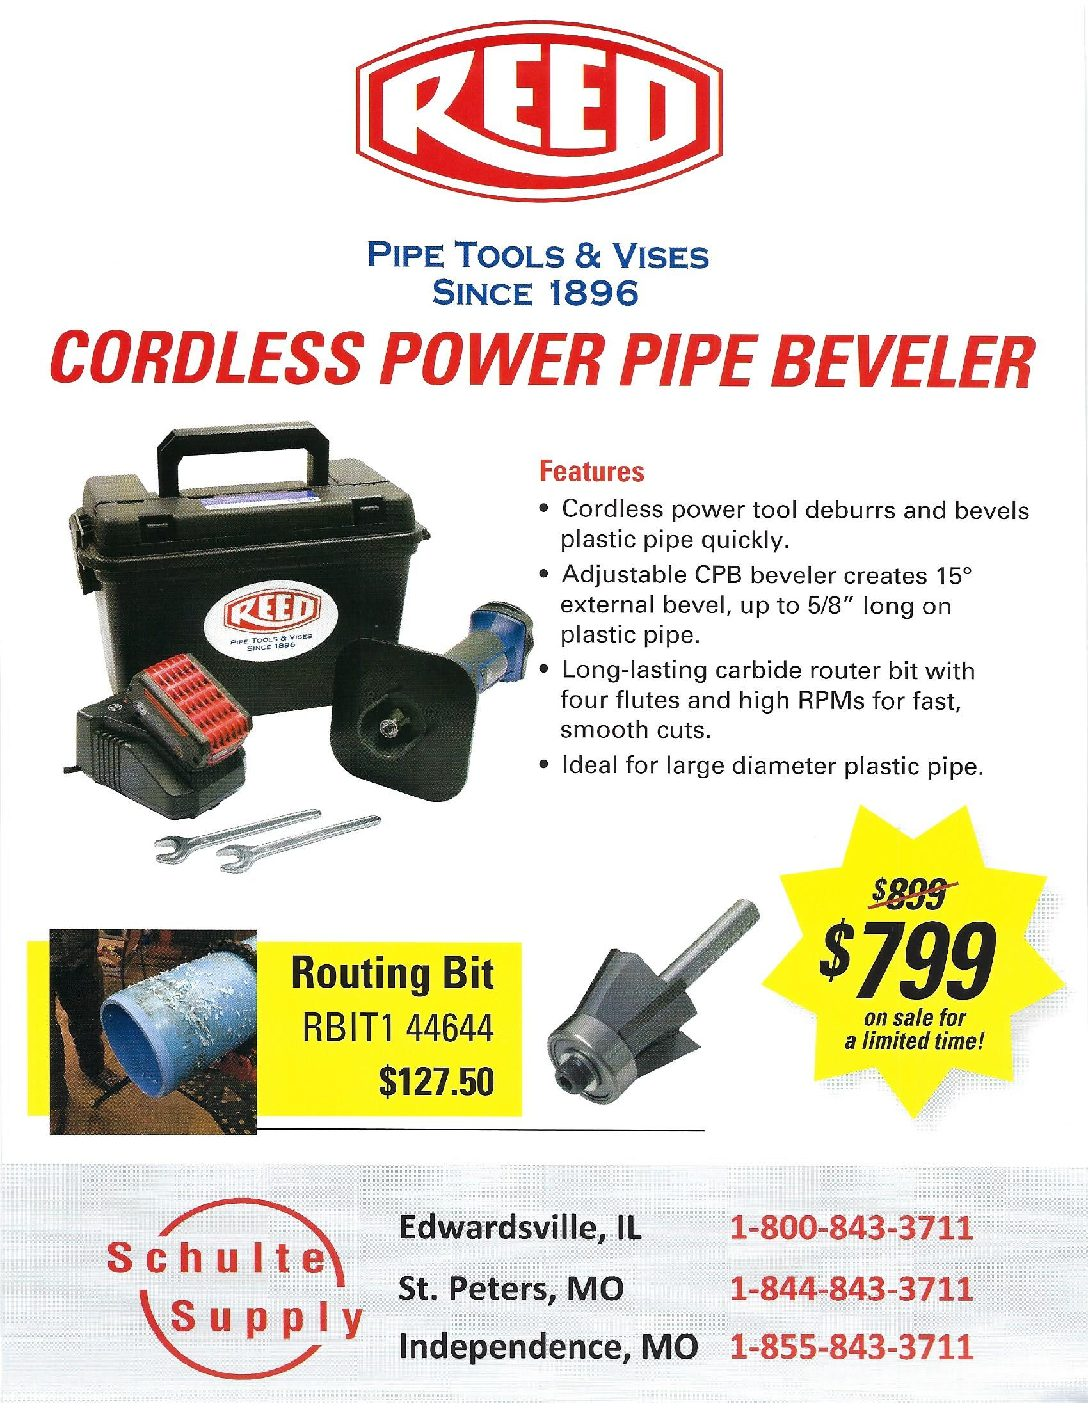 Reed pipe beveler discount